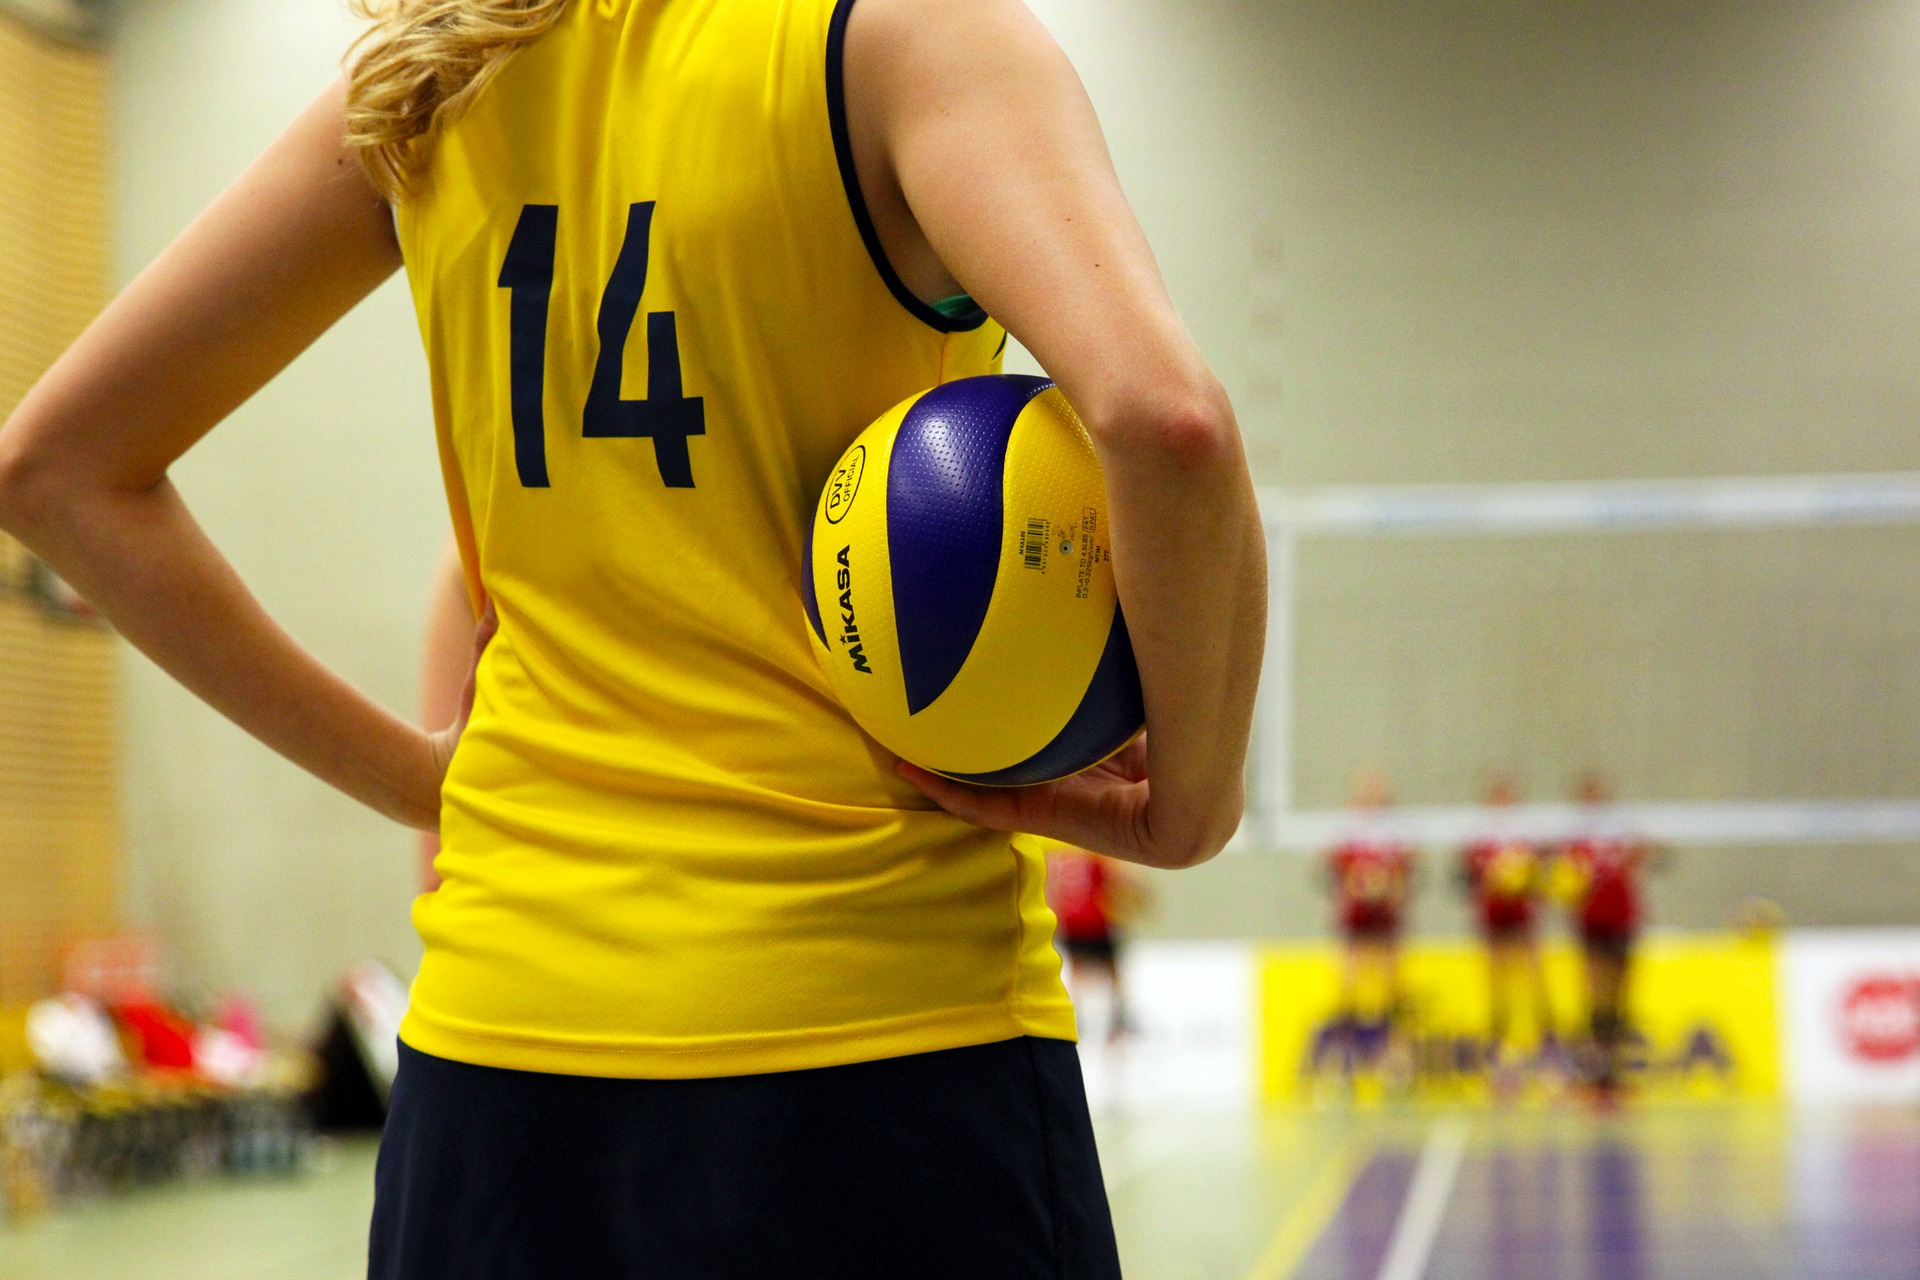 volleyball-520093_1920.jpg